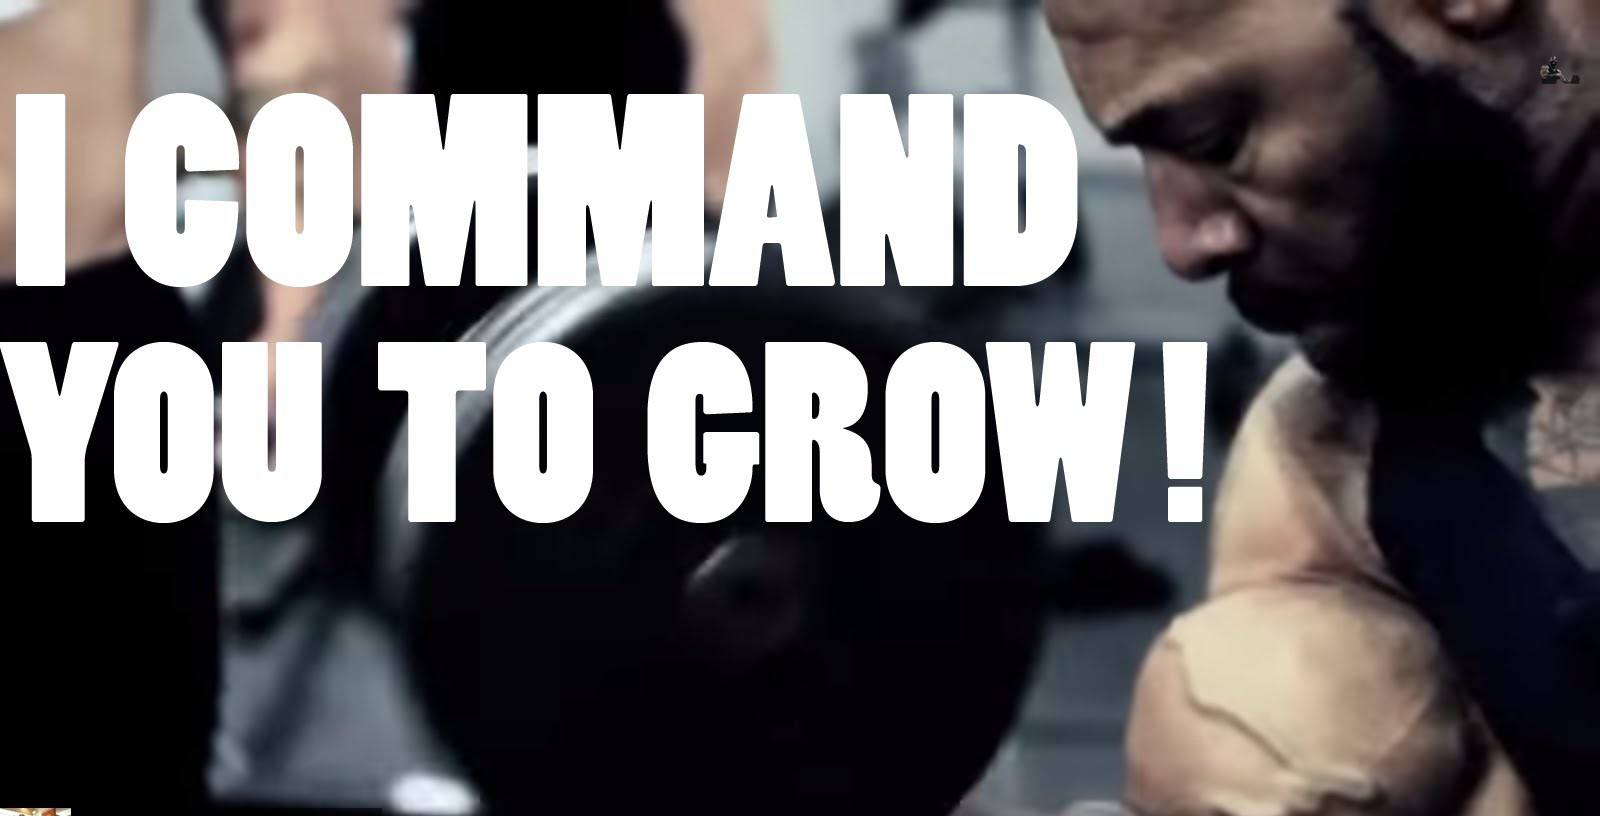 CT Fletcher doesn't believe in overtraining, but, then again, he almost died, and he doesn't do cardio every day.